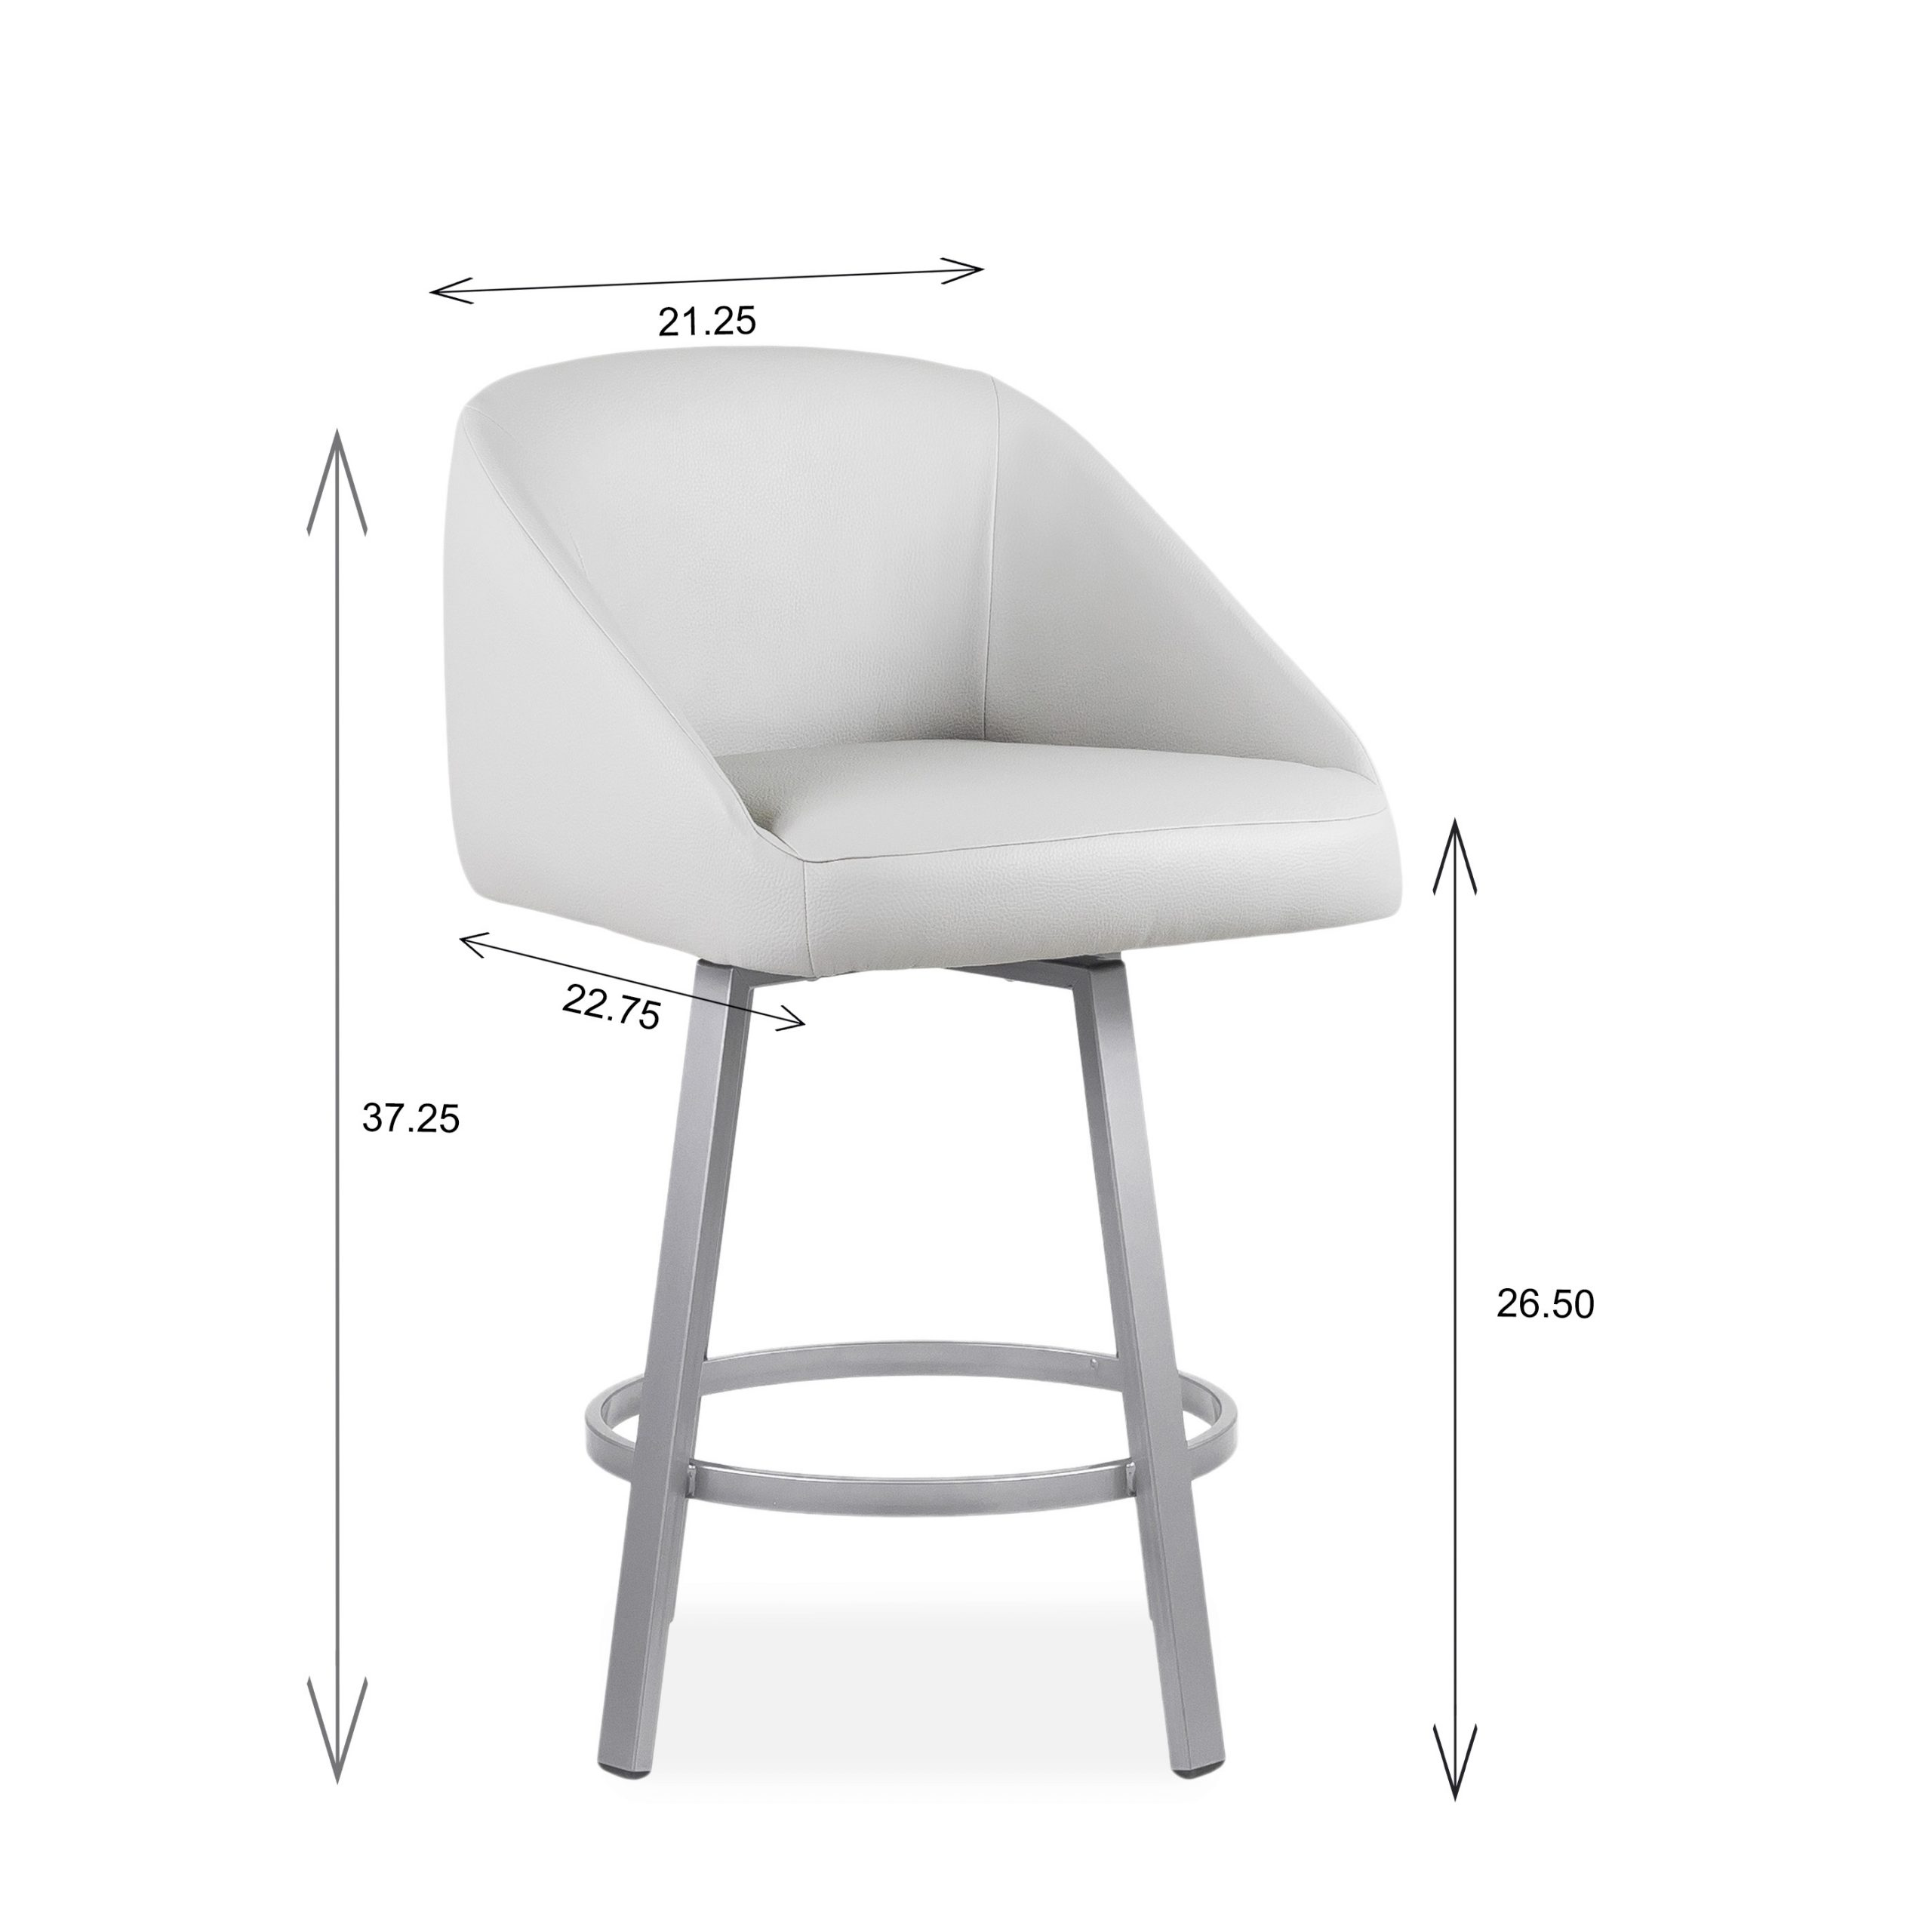 Webly-Sw Snt-Stool-Dimensions